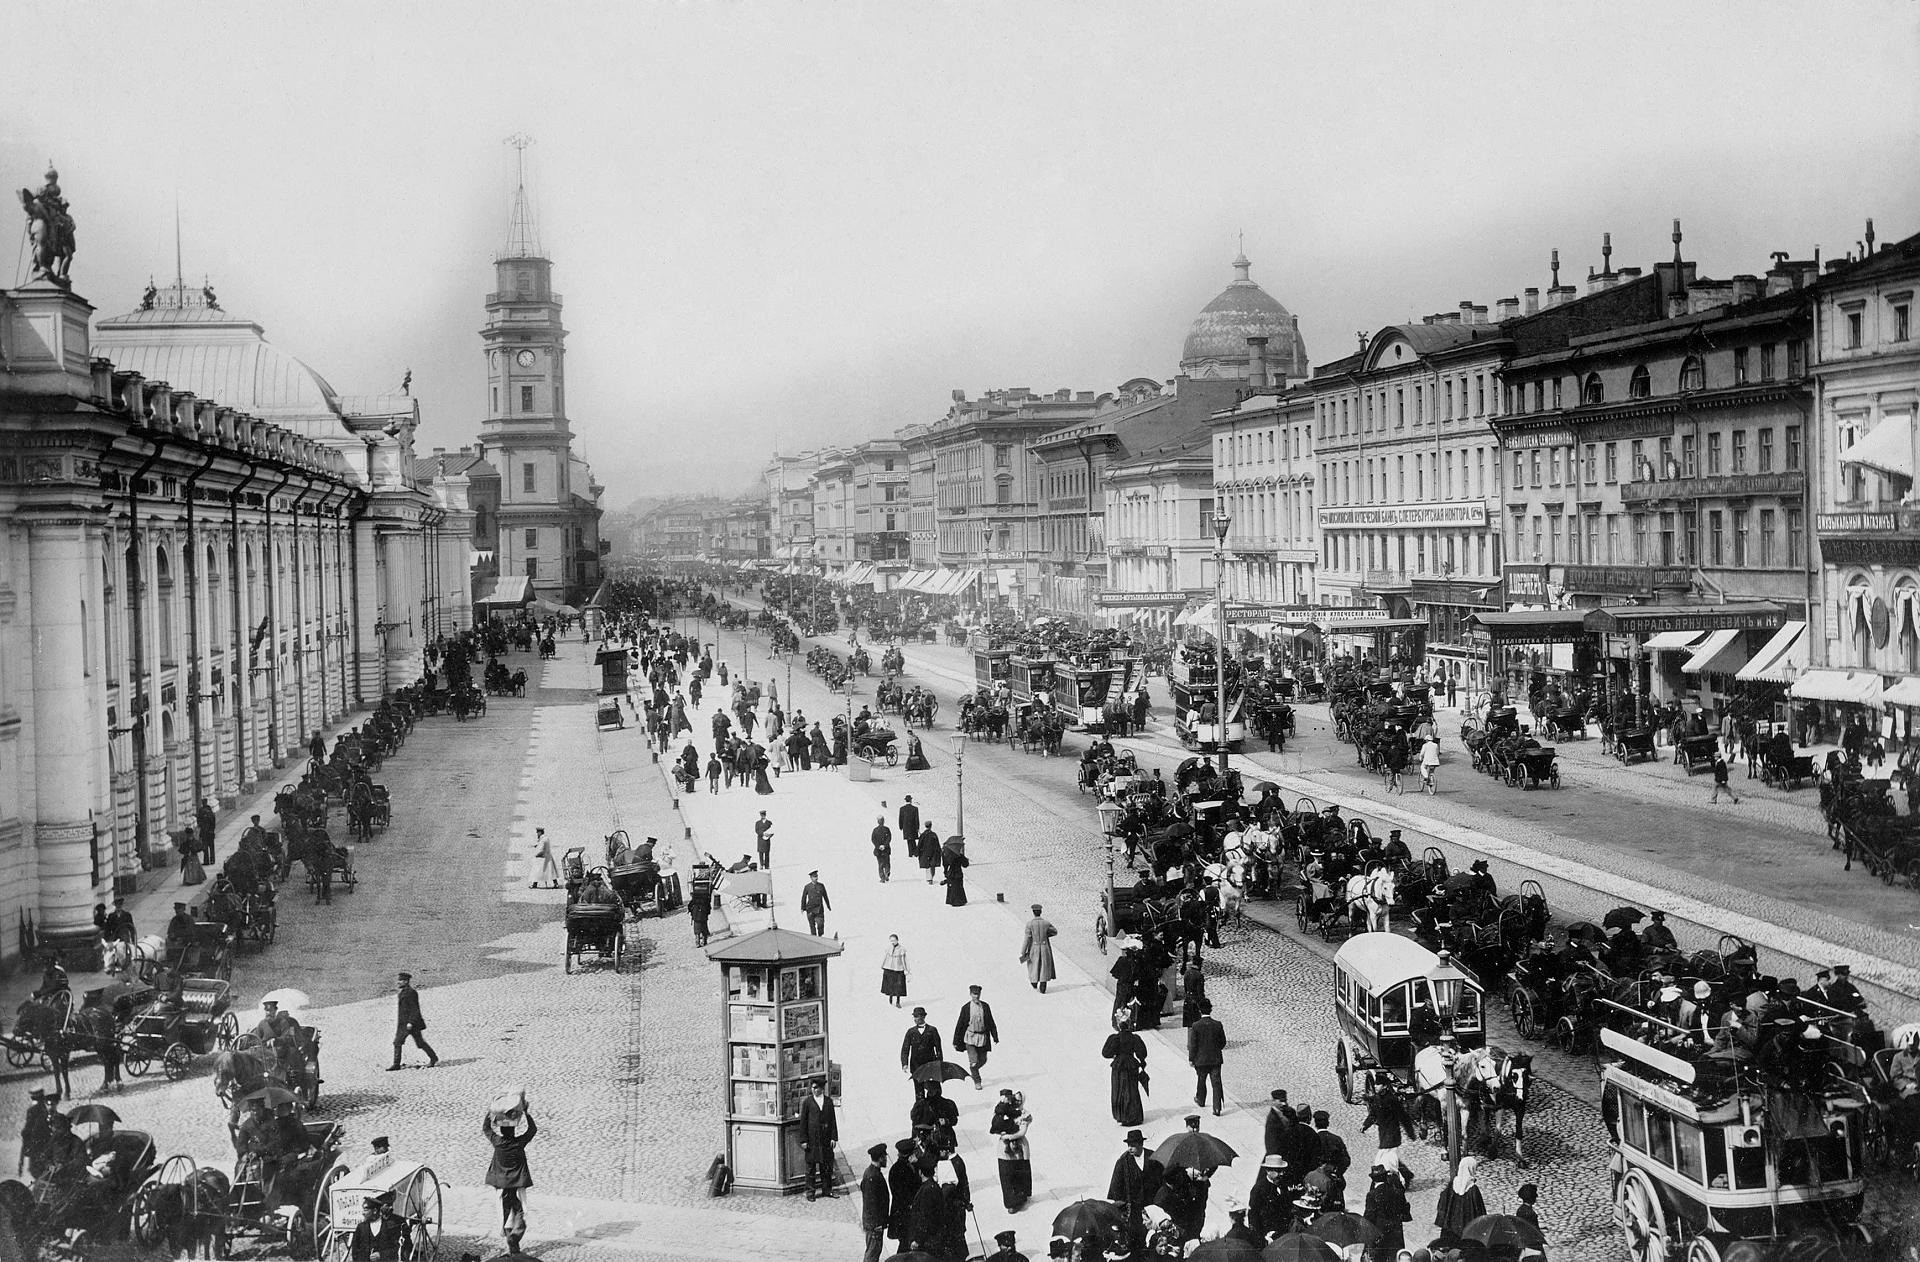 St. Petersburg in late 19th century